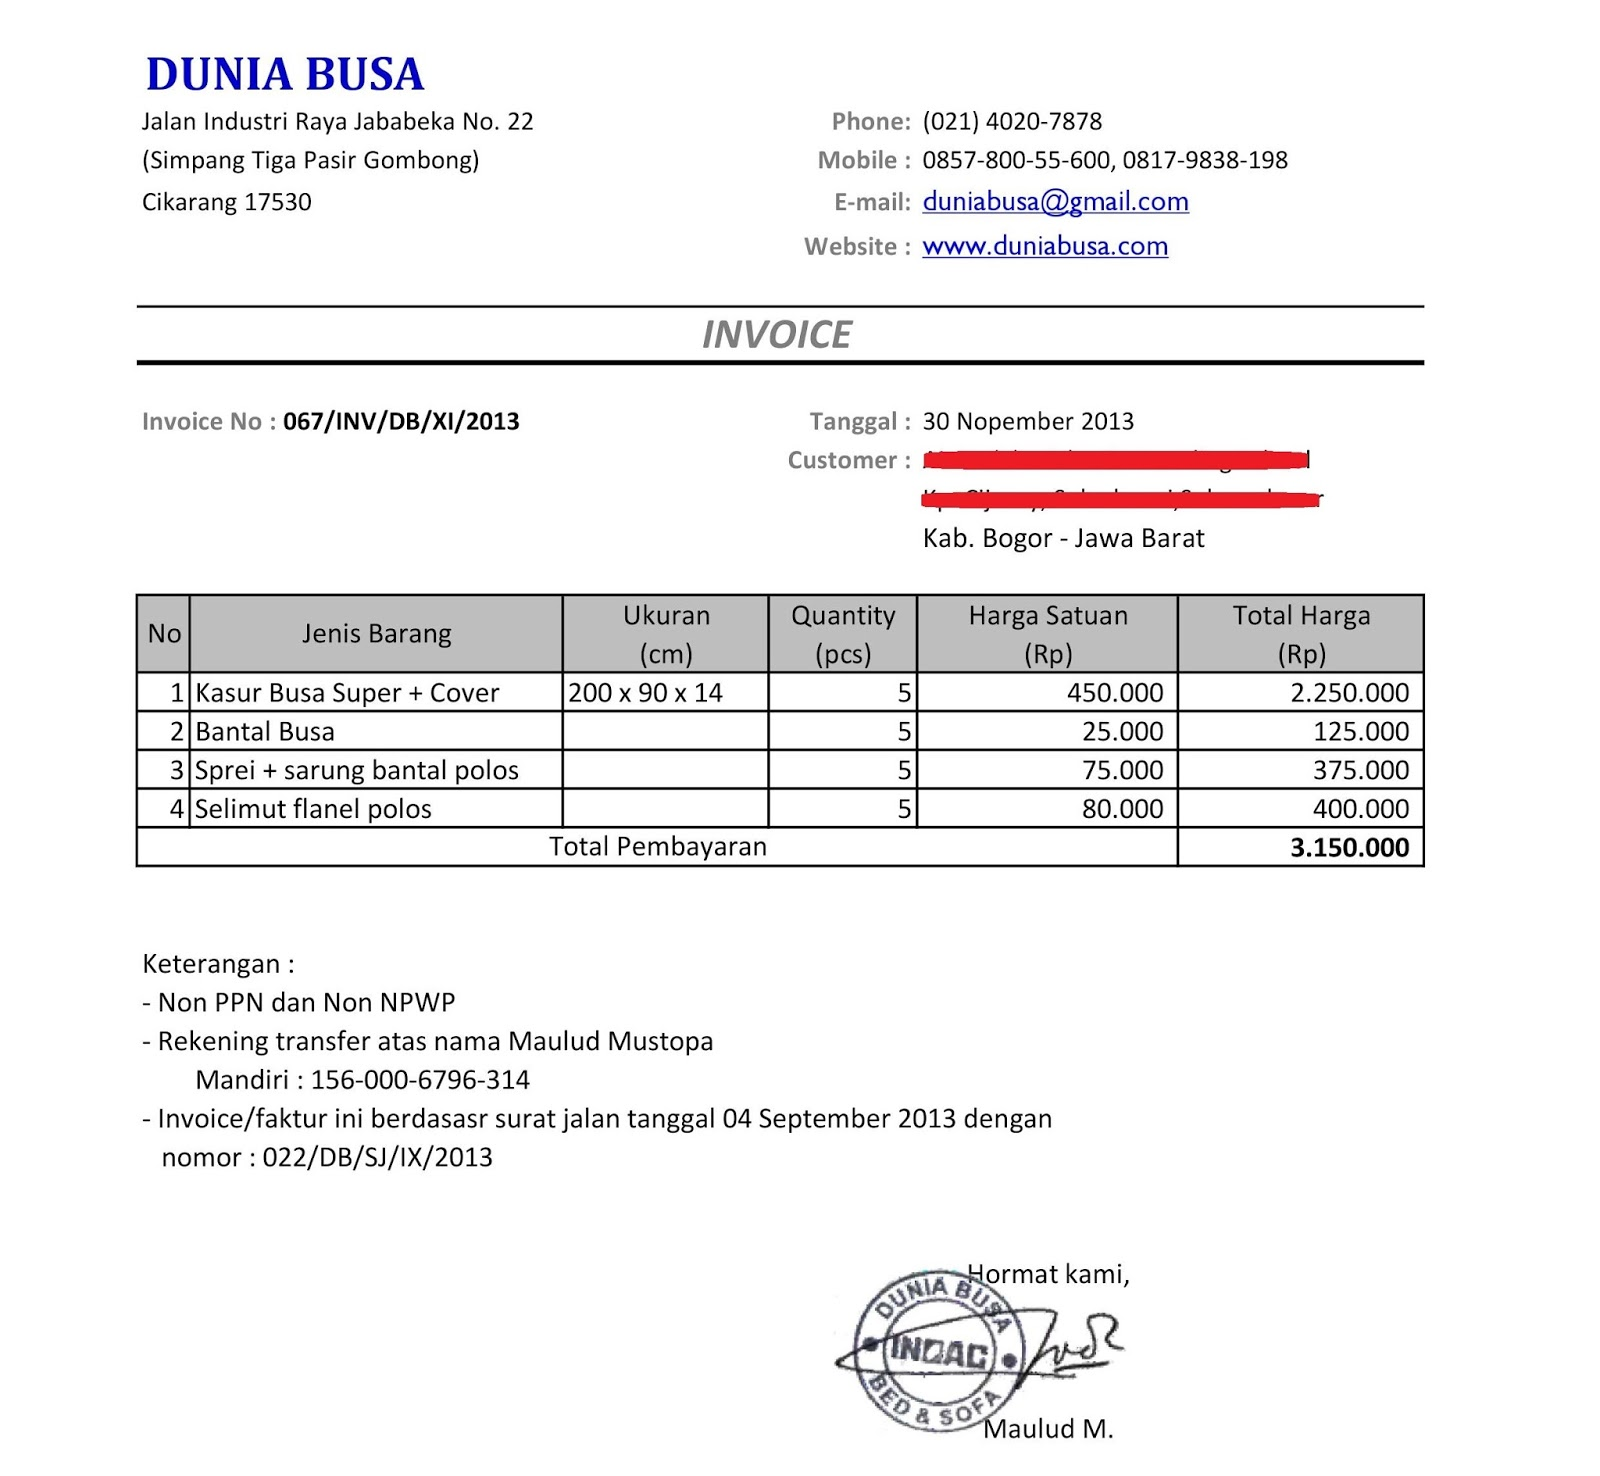 Aldiablosus  Terrific Free Invoice Online  Create Invoice Online  Invoice Template  With Hot Contoh Format Invoice Atau Surat Tagihan  Brankas Arsip  Free Invoice Online With Awesome Invoice Program Mac Also Free Download Invoice Template Excel In Addition Ebay Tax Invoice And How To Create A Tax Invoice In Excel As Well As Invoice What Is It Additionally Rbs Invoicing From Sklepco With Aldiablosus  Hot Free Invoice Online  Create Invoice Online  Invoice Template  With Awesome Contoh Format Invoice Atau Surat Tagihan  Brankas Arsip  Free Invoice Online And Terrific Invoice Program Mac Also Free Download Invoice Template Excel In Addition Ebay Tax Invoice From Sklepco